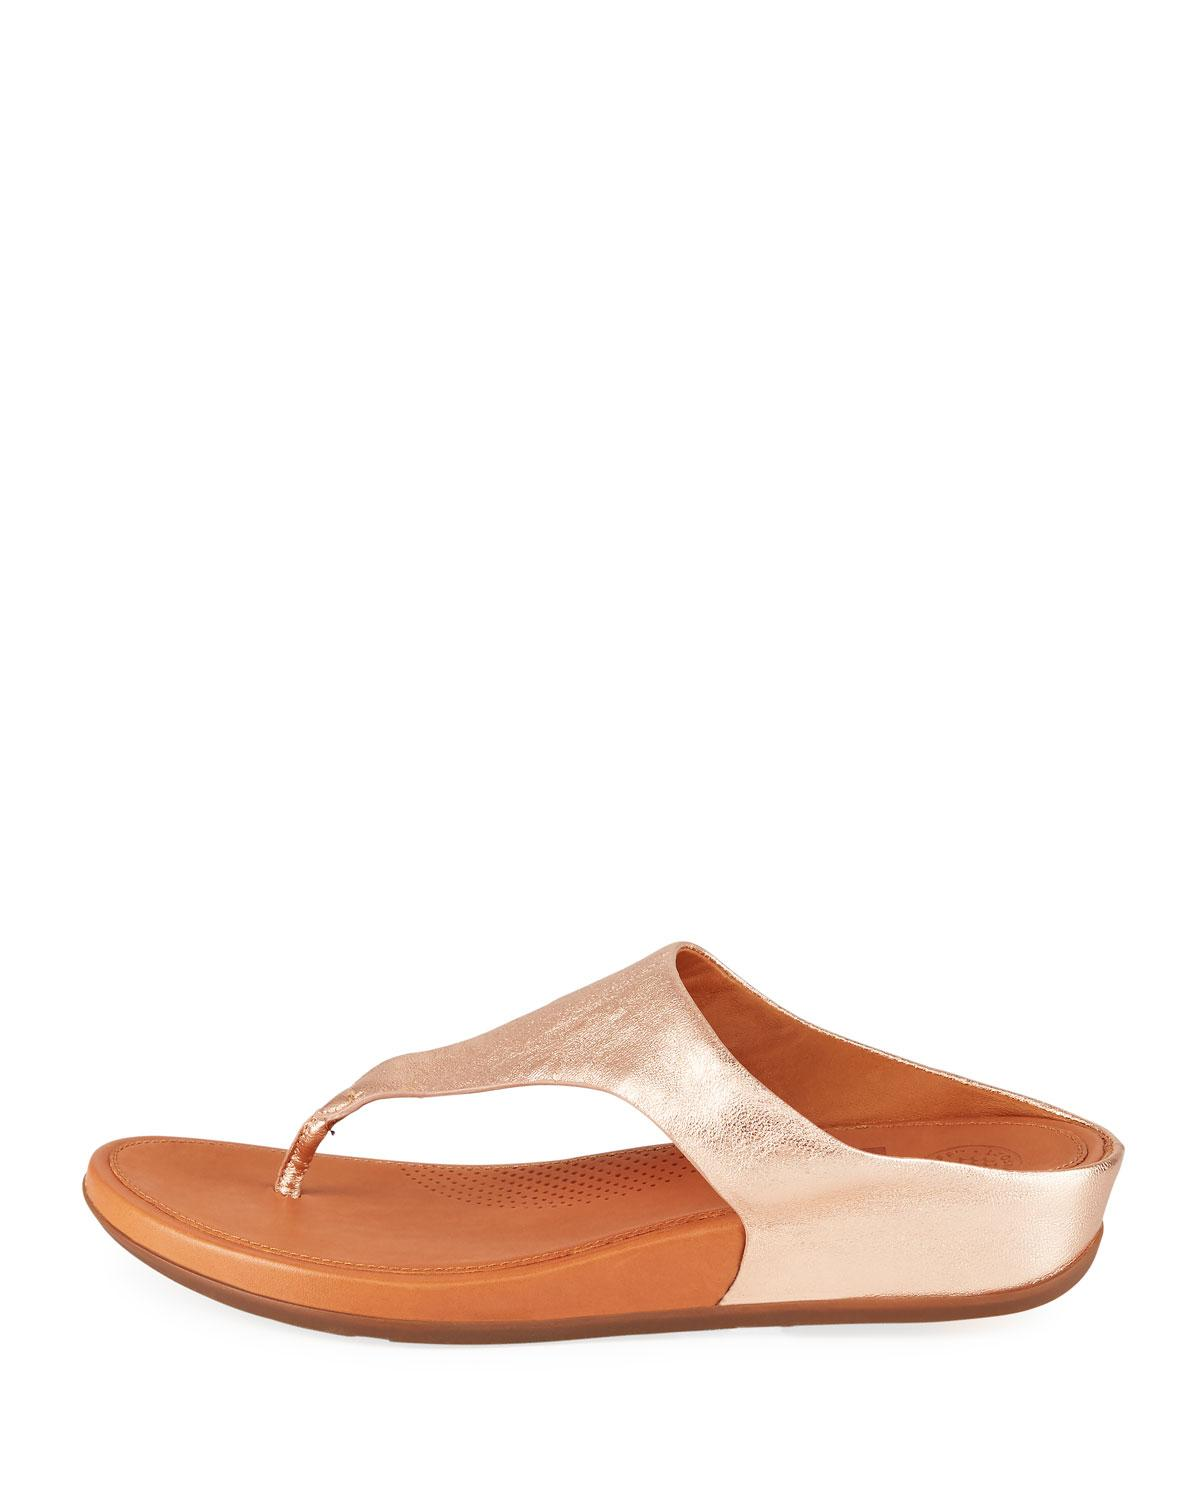 82cd1269a Lyst - Fitflop Banda Metallic Leather Thong Sandals